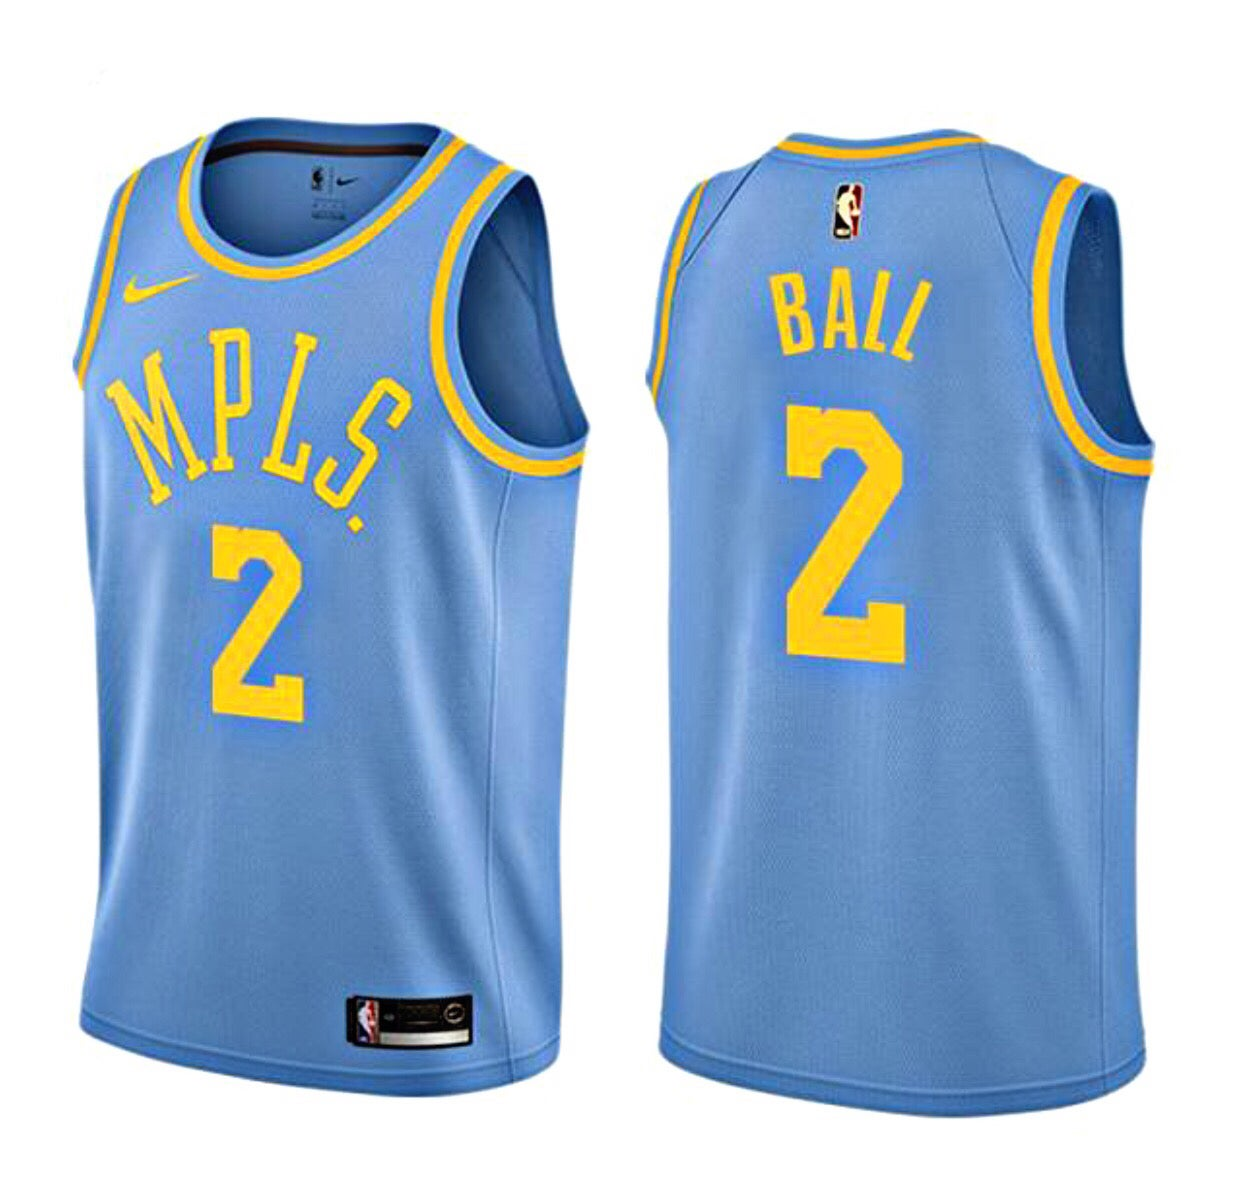 Retro Jerseys Retro Lonzo Ball Lakers 2 Jersey